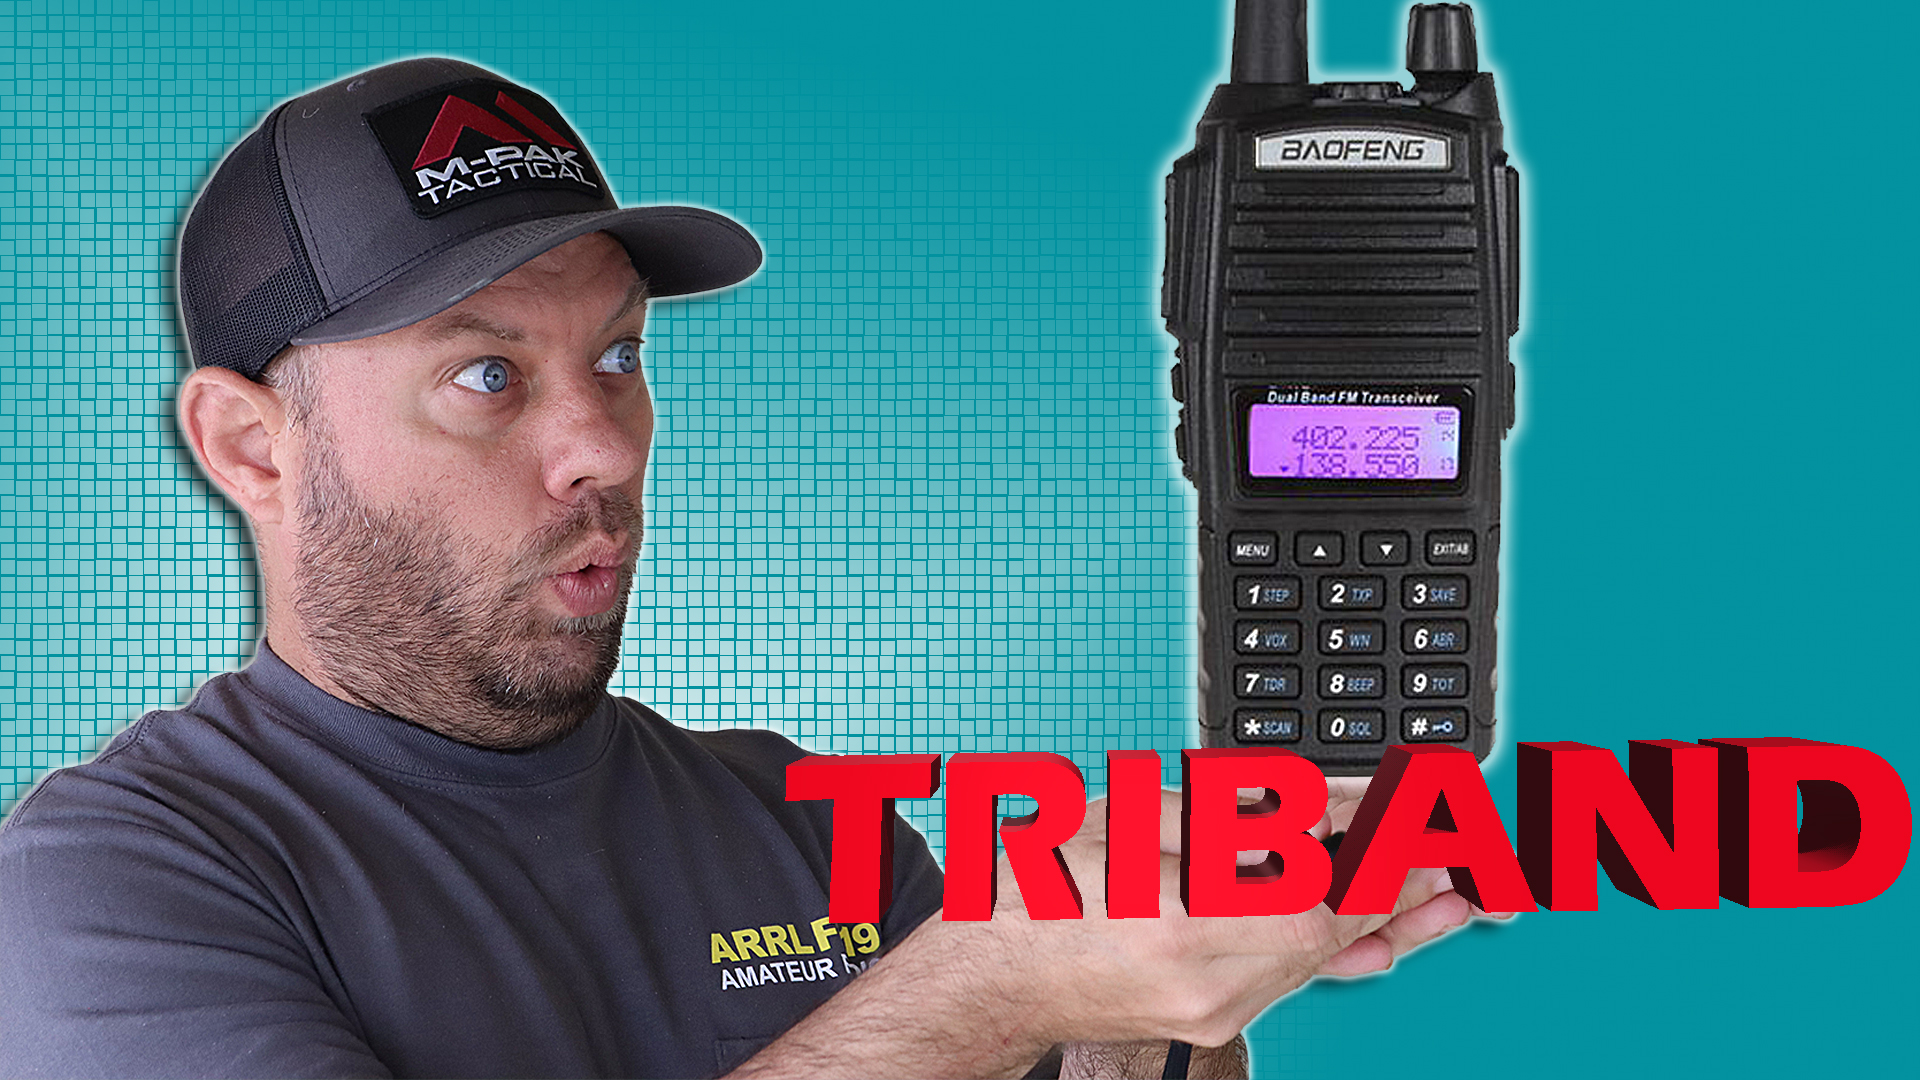 Episode 439: Baofeng UV-82×3 Triband Ham Radio Review and Power Testing